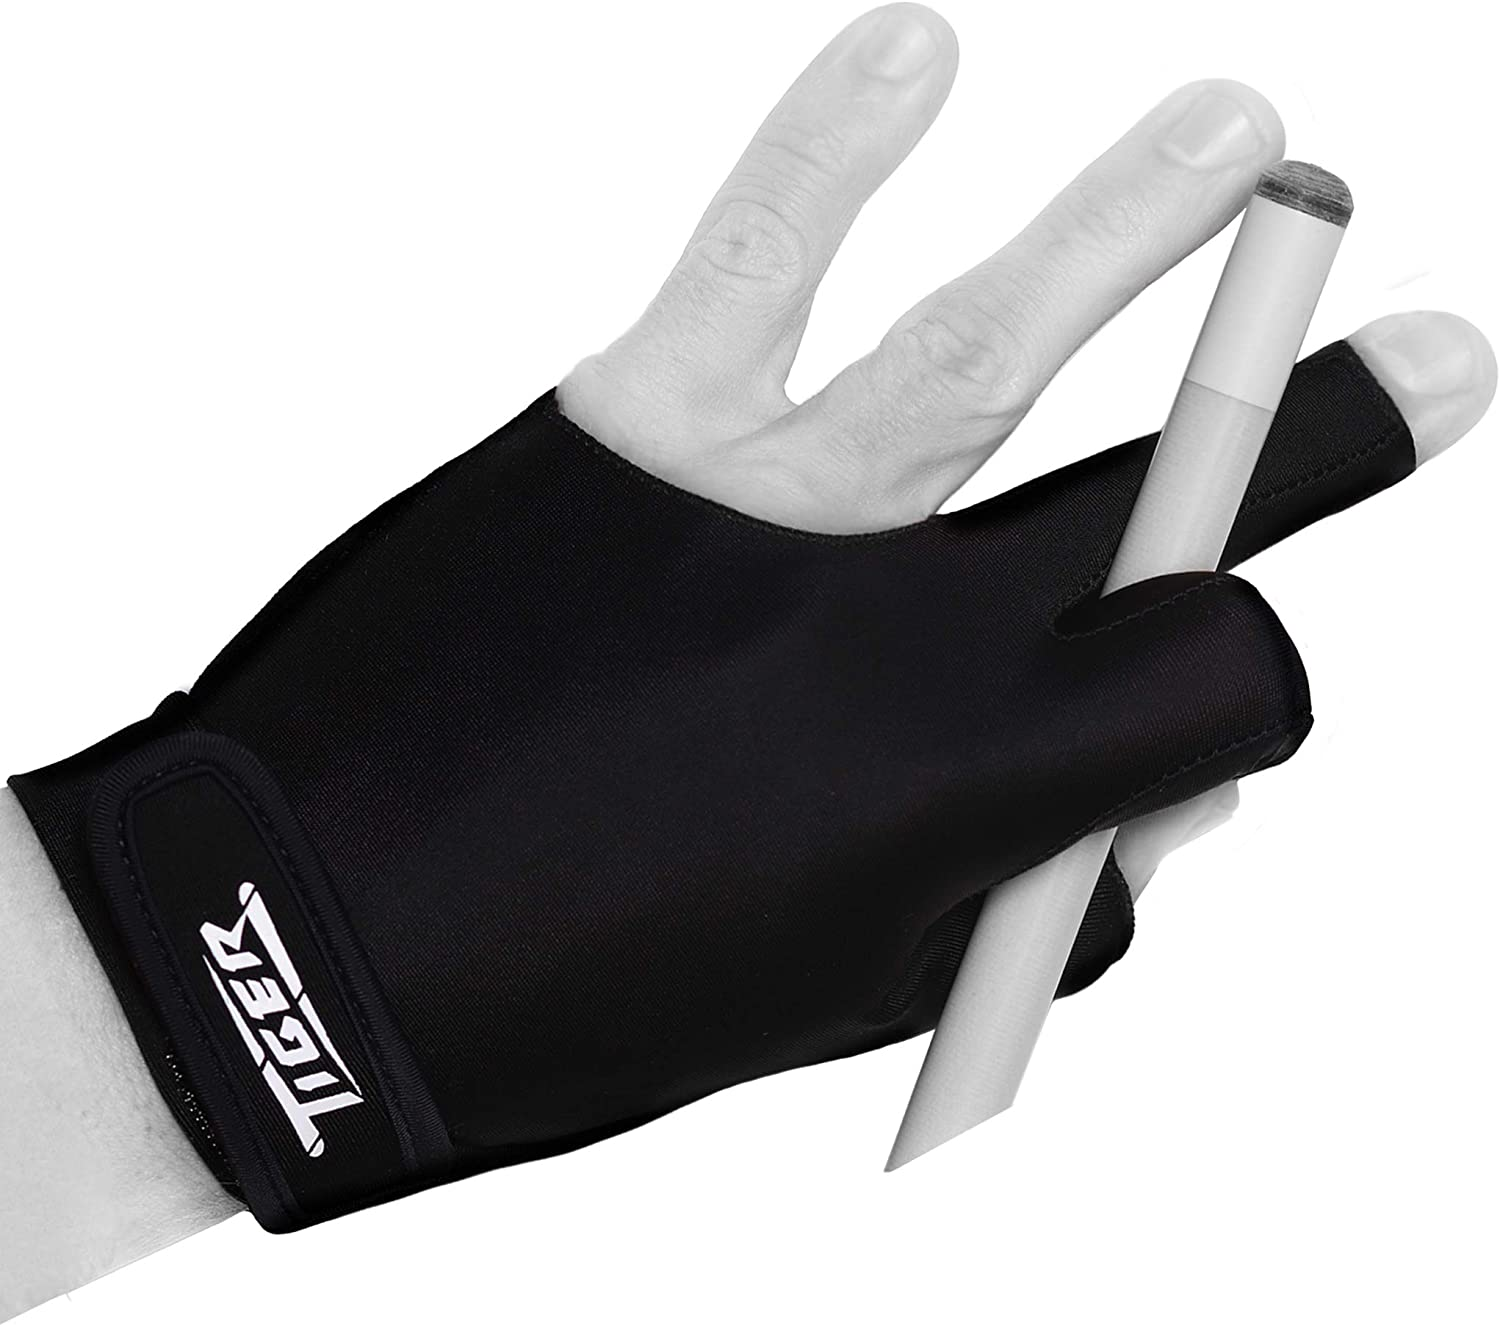 Tiger-X Billiard Recommended Glove - Black for Max 60% OFF Left Tiger by Hand Products